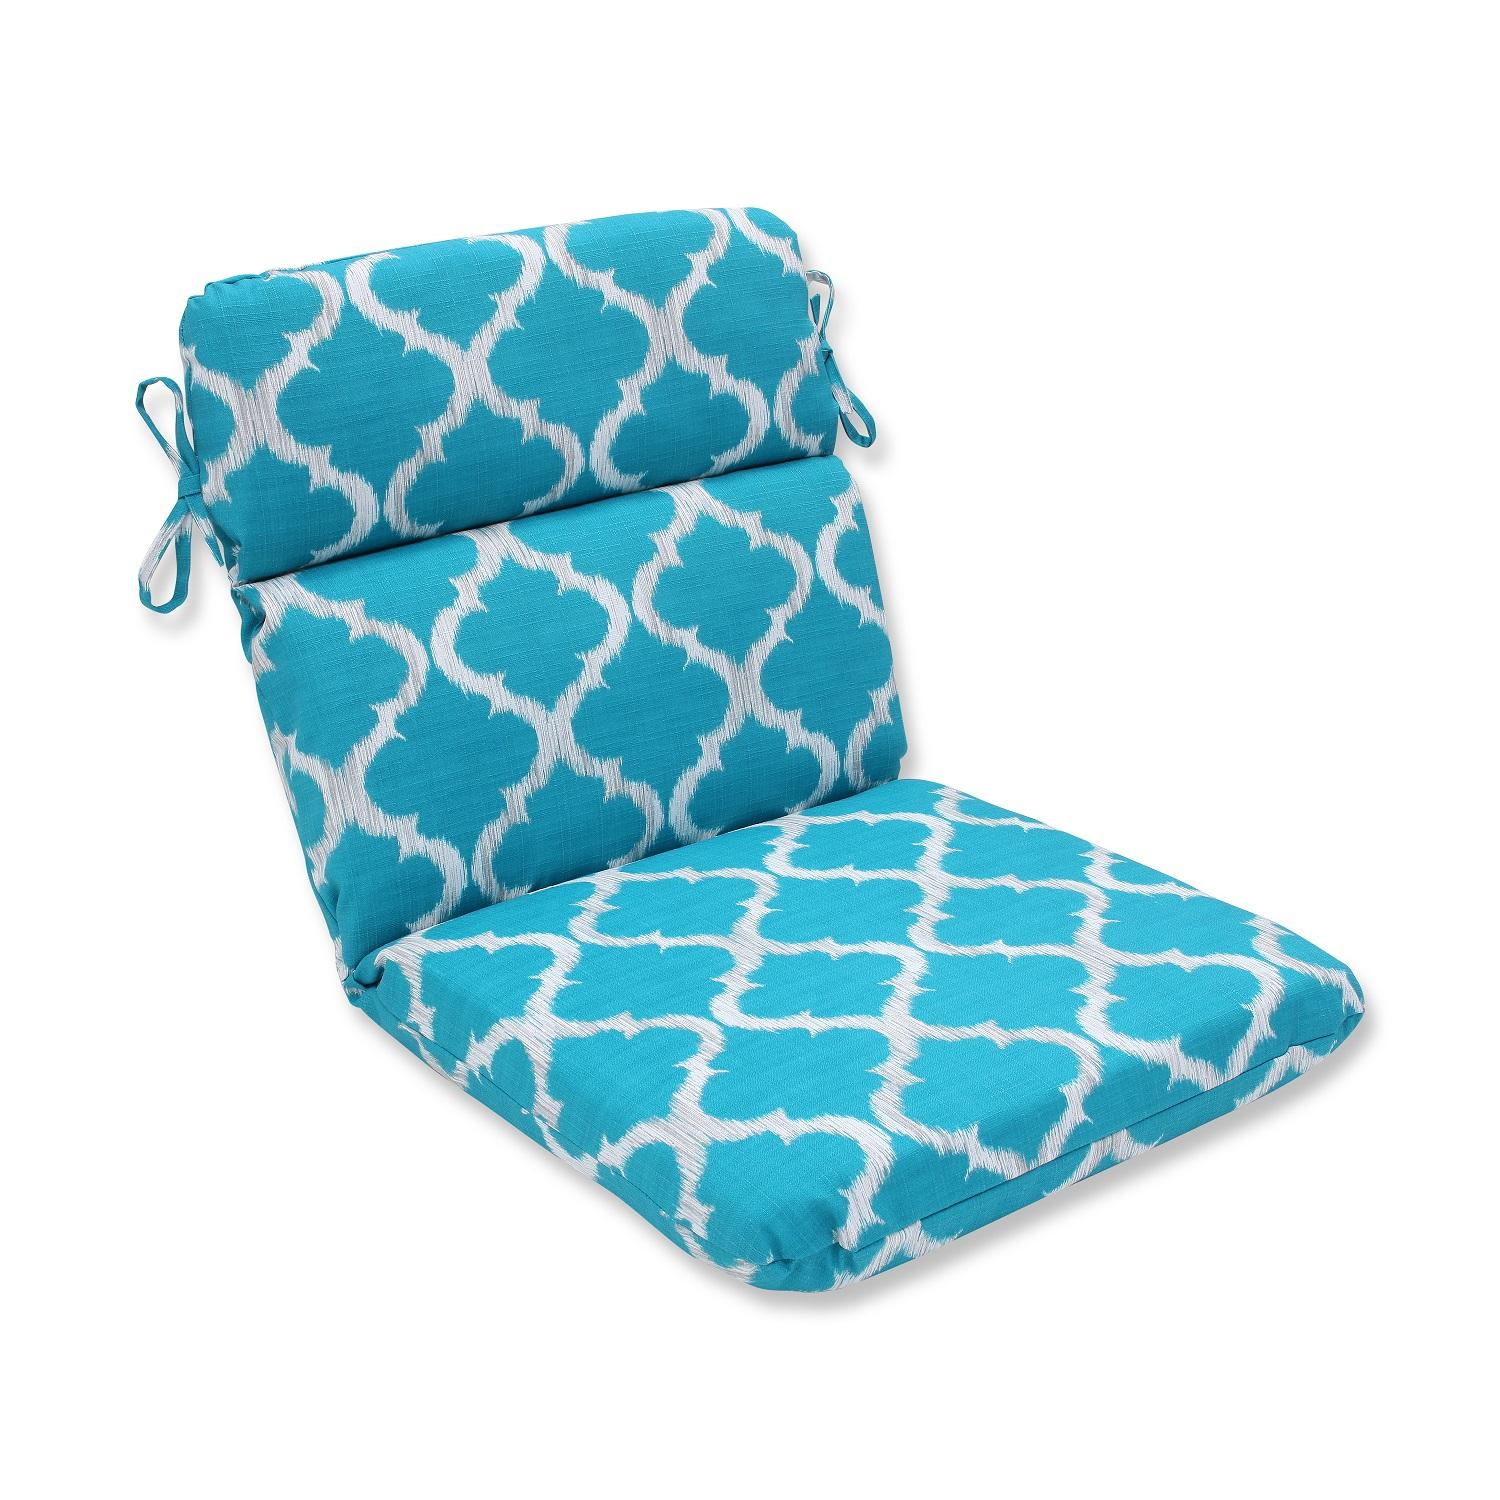 """21"""" x 40.5"""" Turquoise Geometry Outdoor Chair Cushion"""